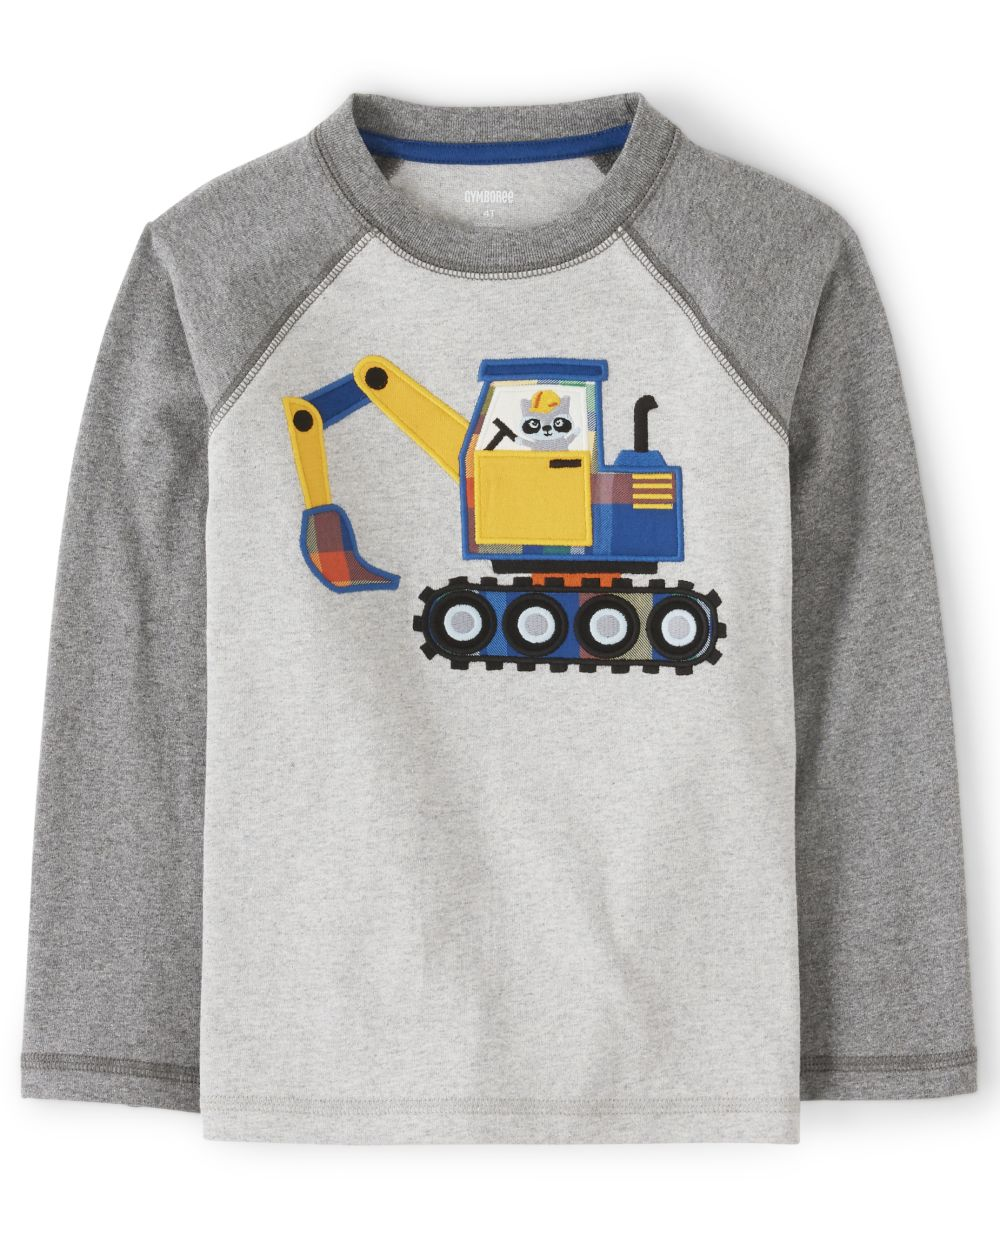 Boys Embroidered Construction Truck Top - Demolition Dude